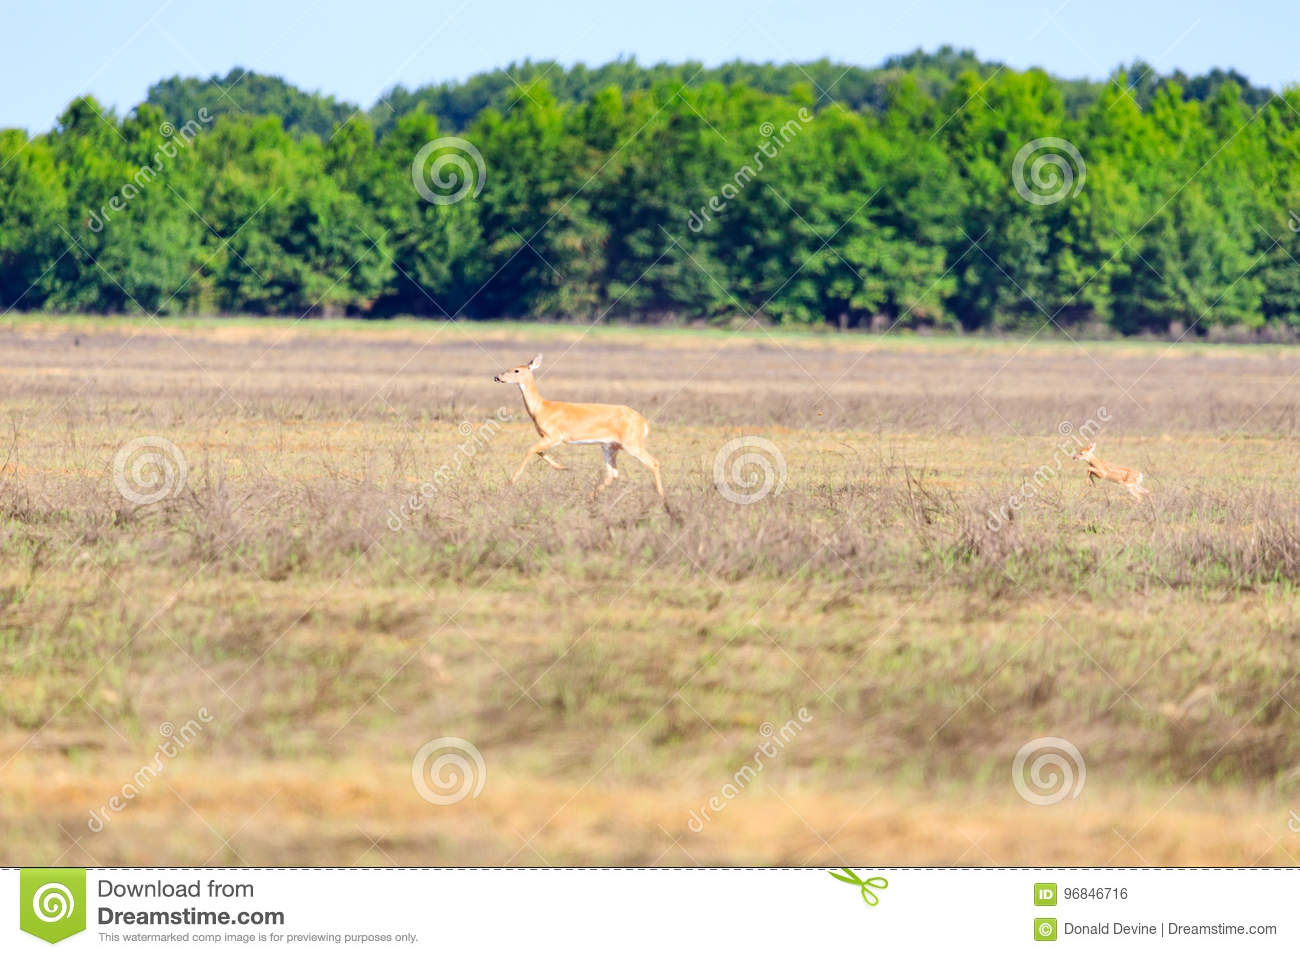 A white-tailed, Odocoileus virginianus, doe and her fawn walk across a field in Bald Knob Wildlife Refuge in Bald Knob